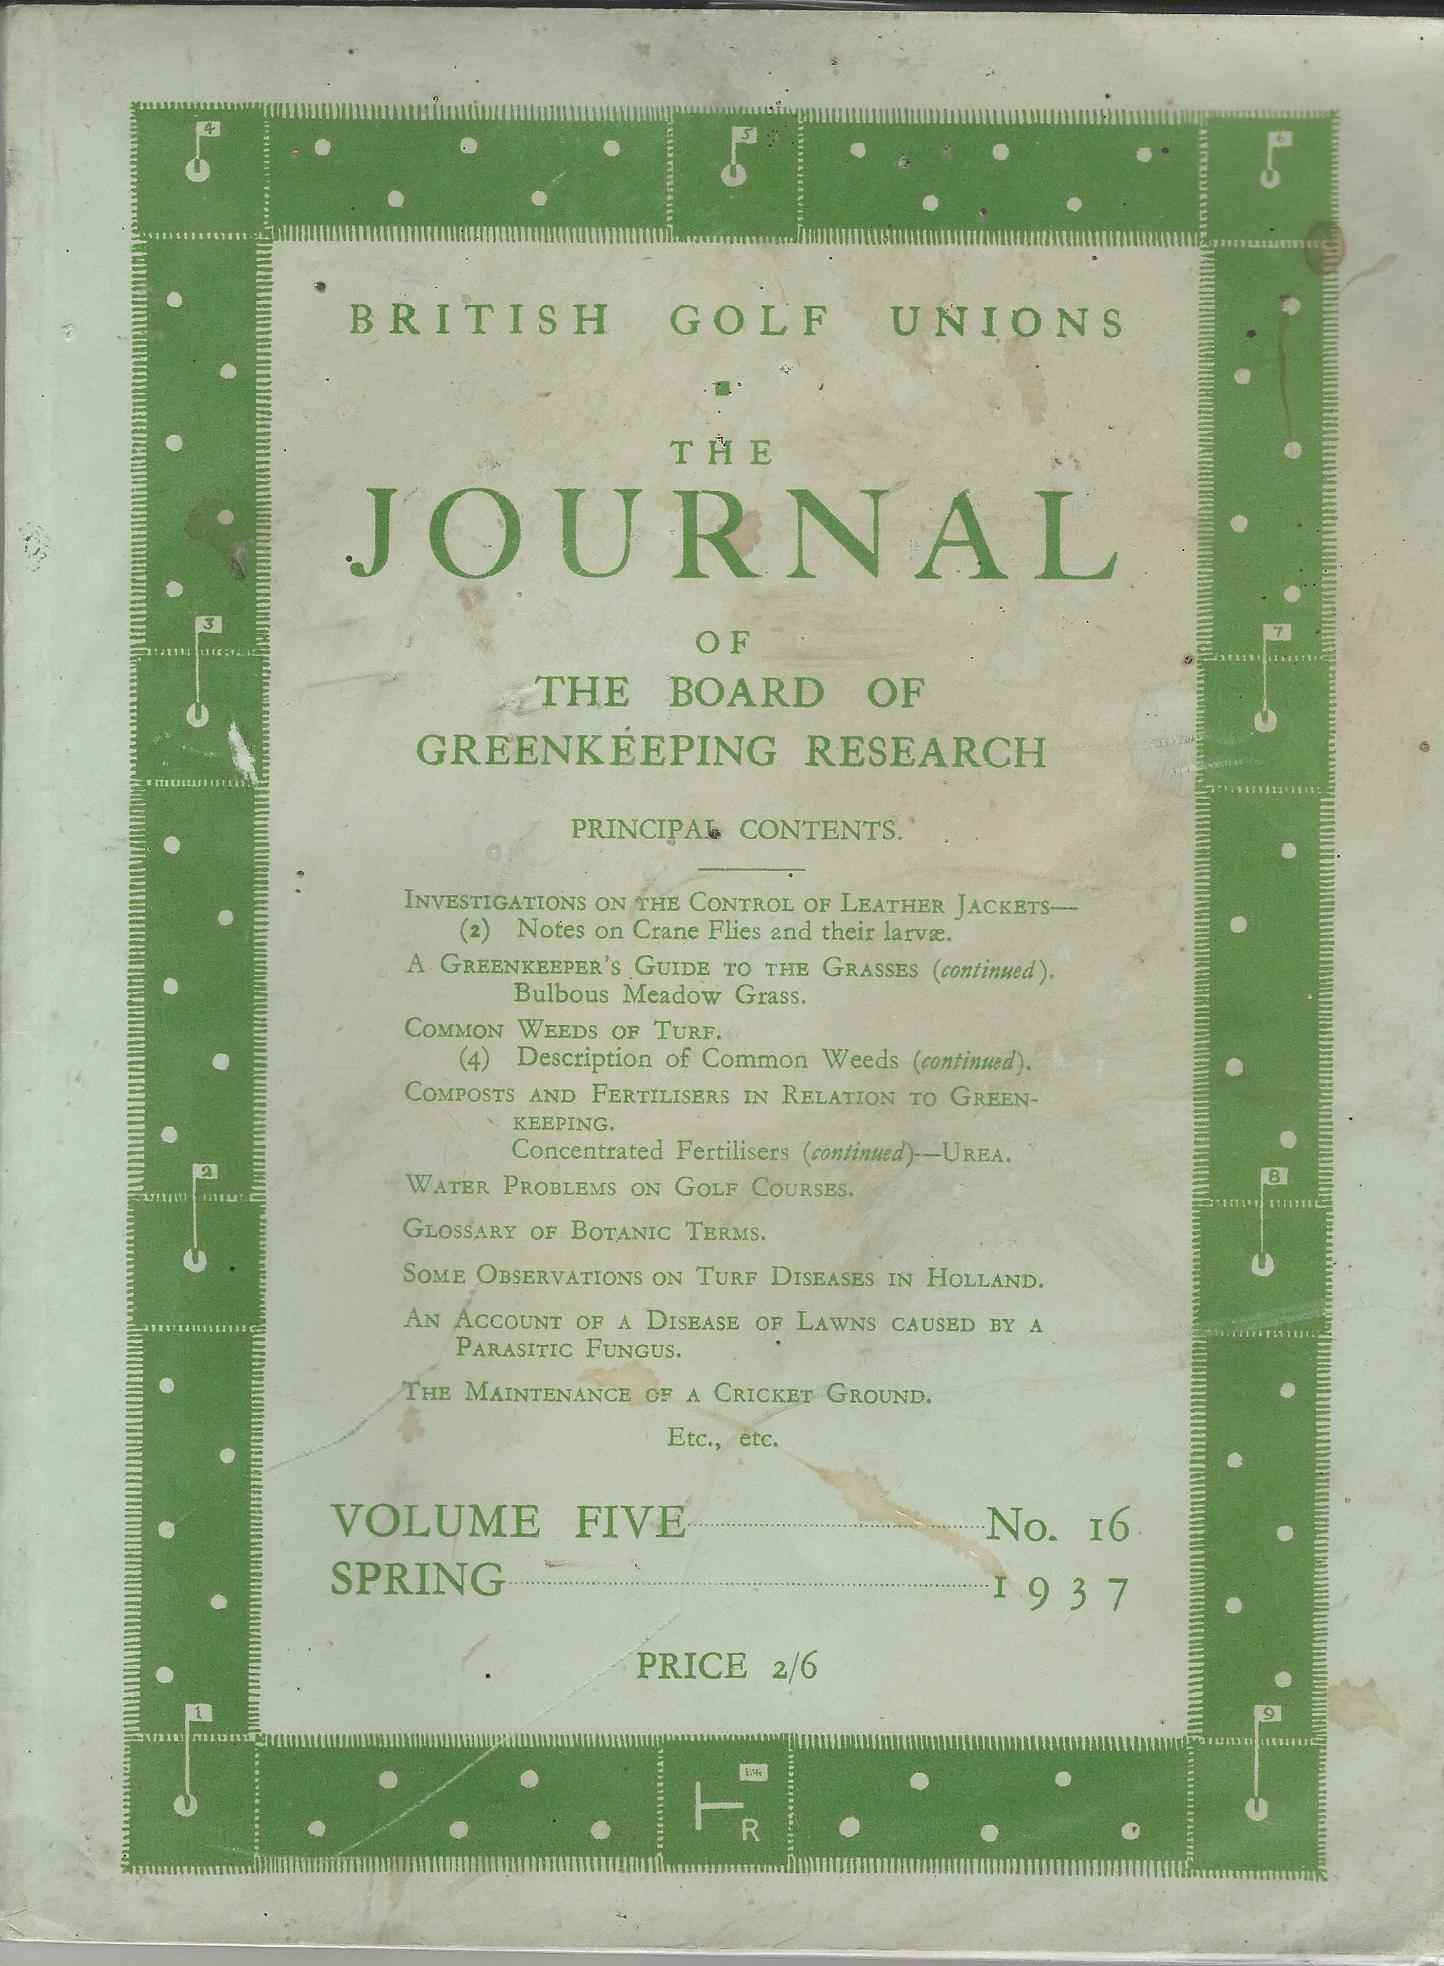 Image for British Golf Unions: The Journal of the Board of Greenkeeping Research, Volume V, number 16.